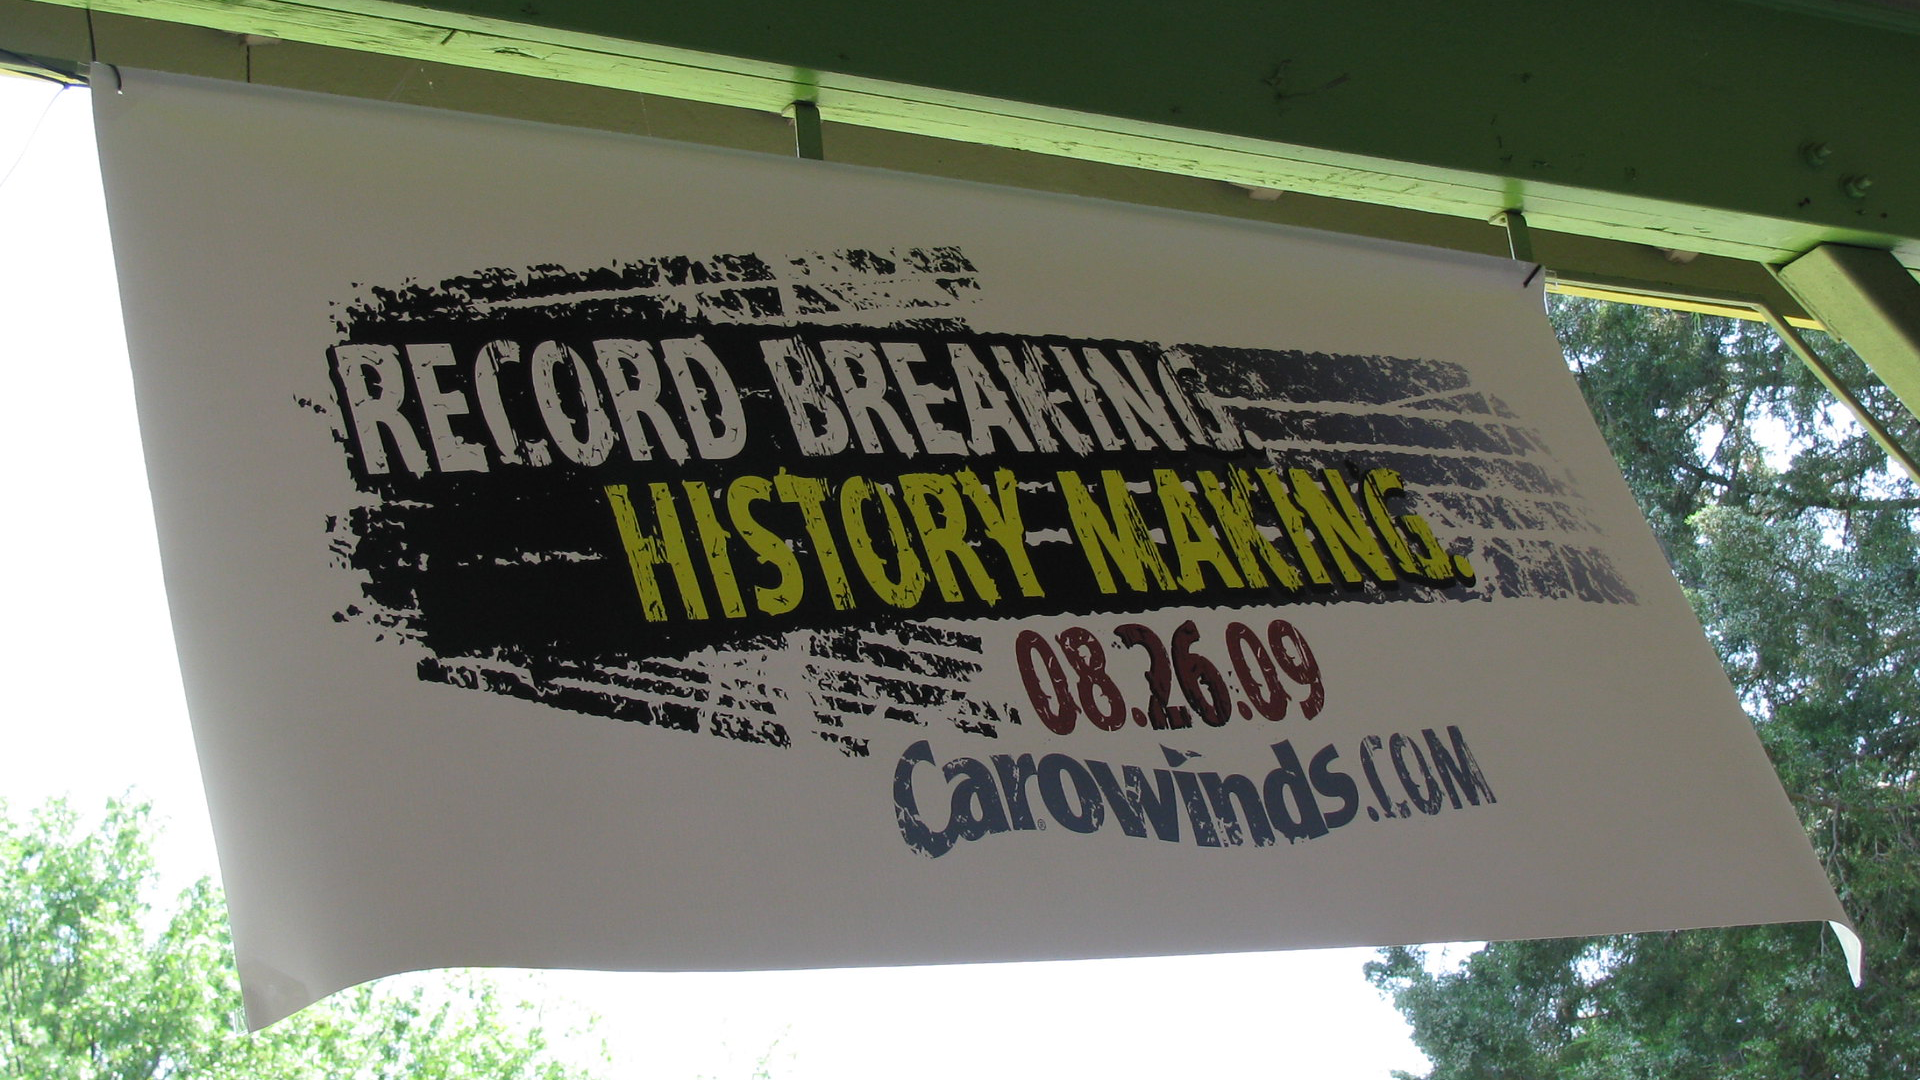 Signage for the Indimidator Roller Coaster at Carowinds